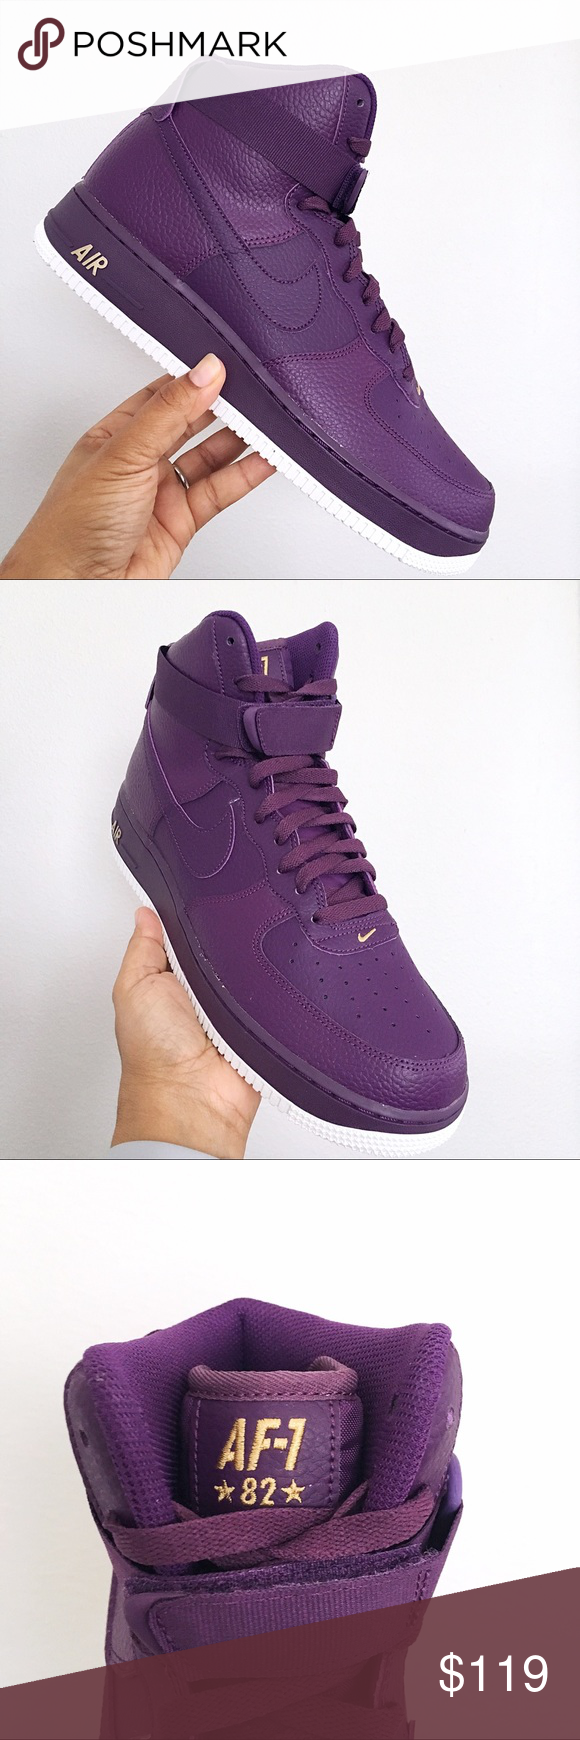 details for dirt cheap aliexpress Nike Air Force 1 High 07 Night Purple Mens Shoes Brand New ...